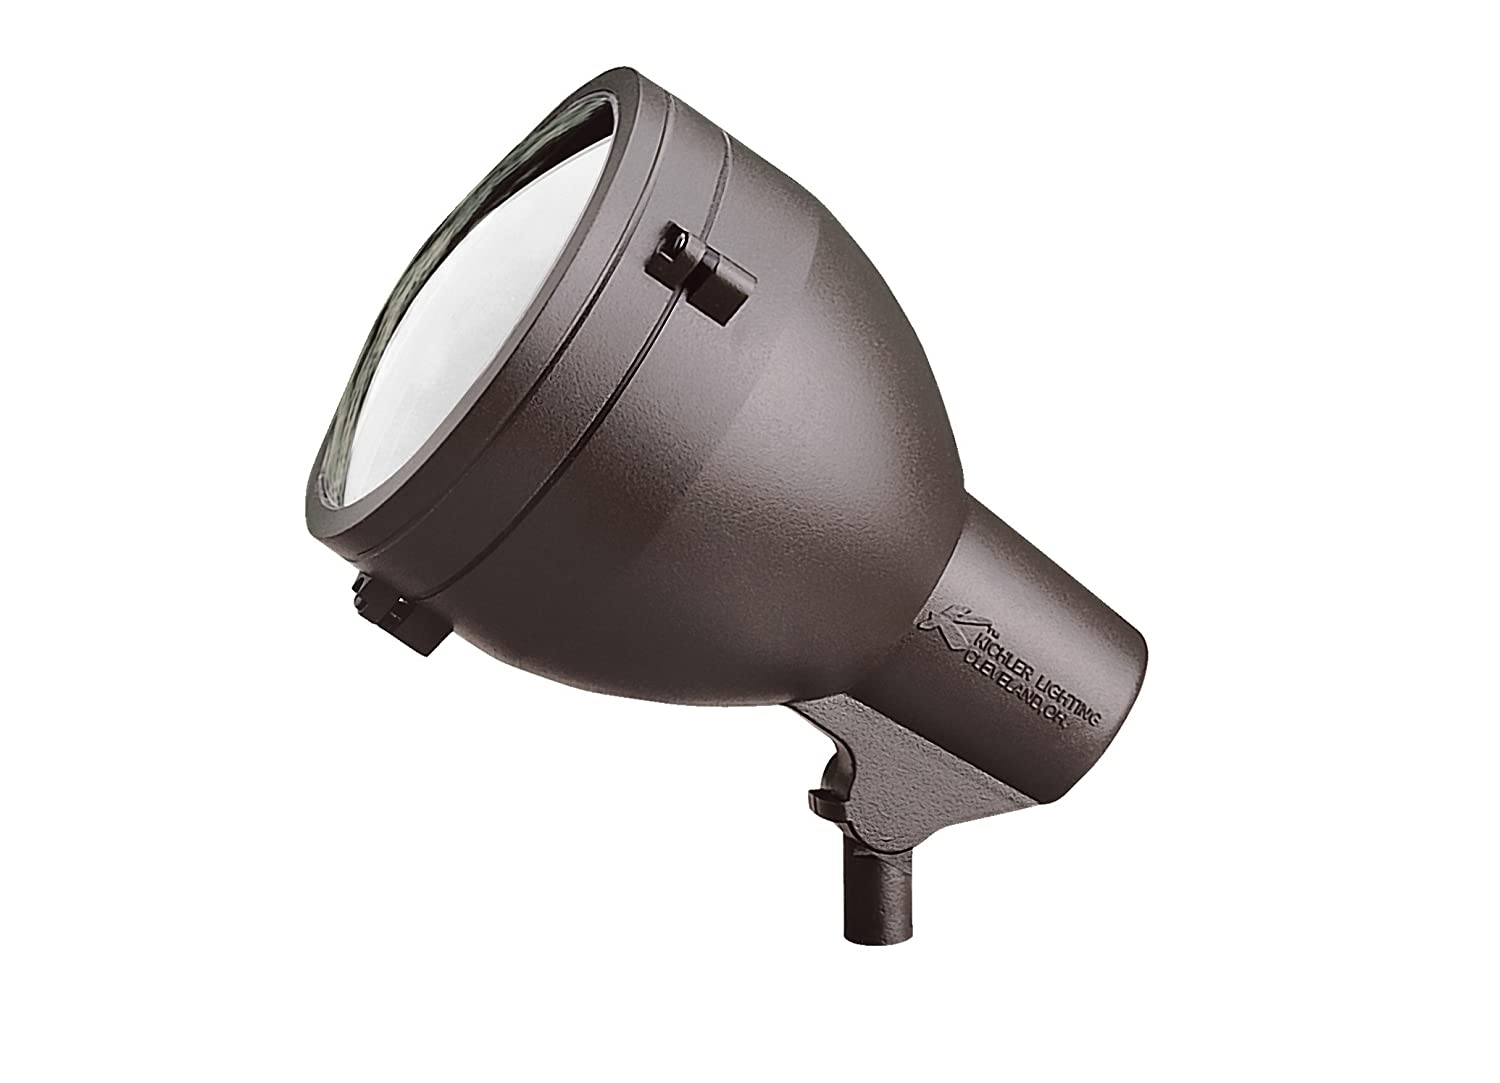 Kichler 15251azt hid high intensity discharge accent 1 light 120v kichler 15251azt hid high intensity discharge accent 1 light 120v textured architectural bronze landscape spotlights amazon aloadofball Choice Image